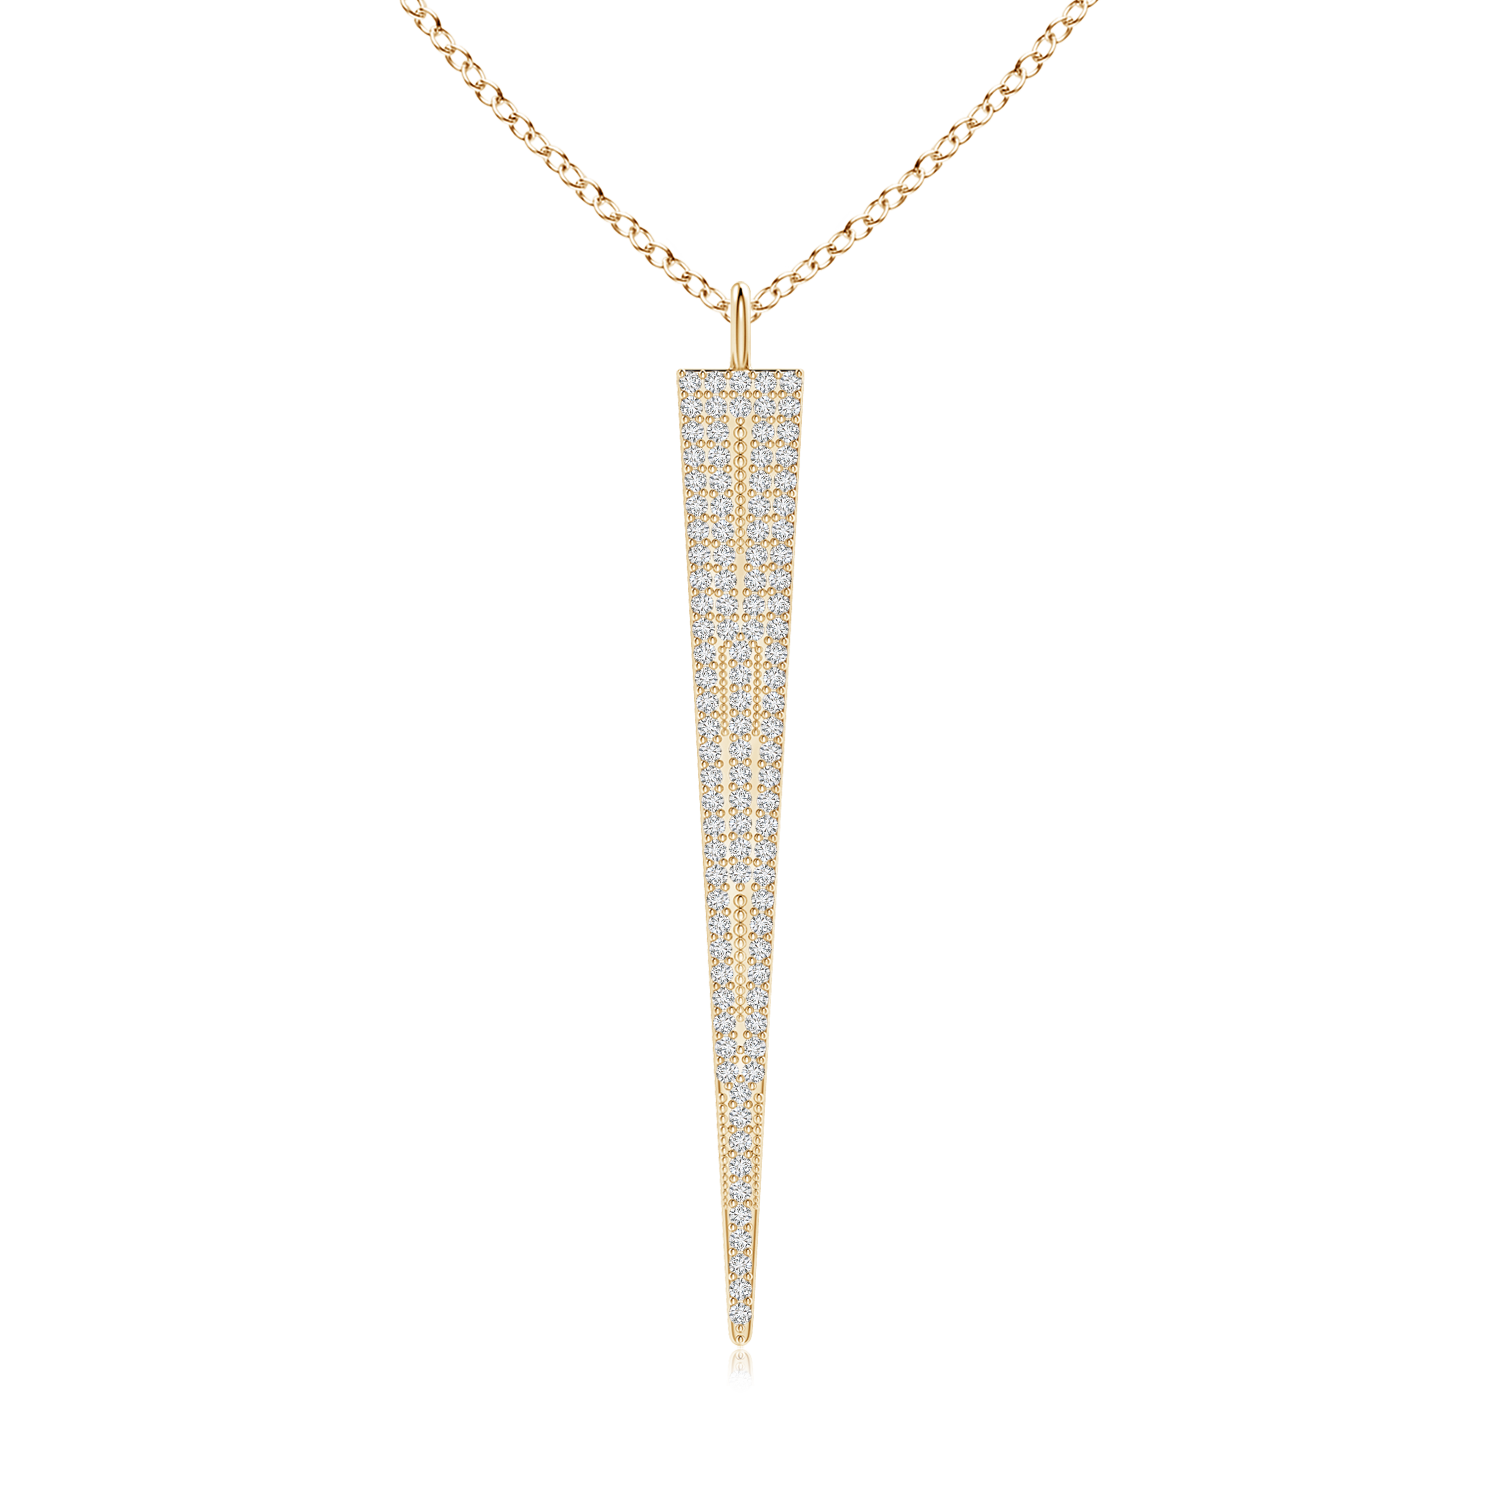 Lab Grown Diamond Long Triangle Necklace